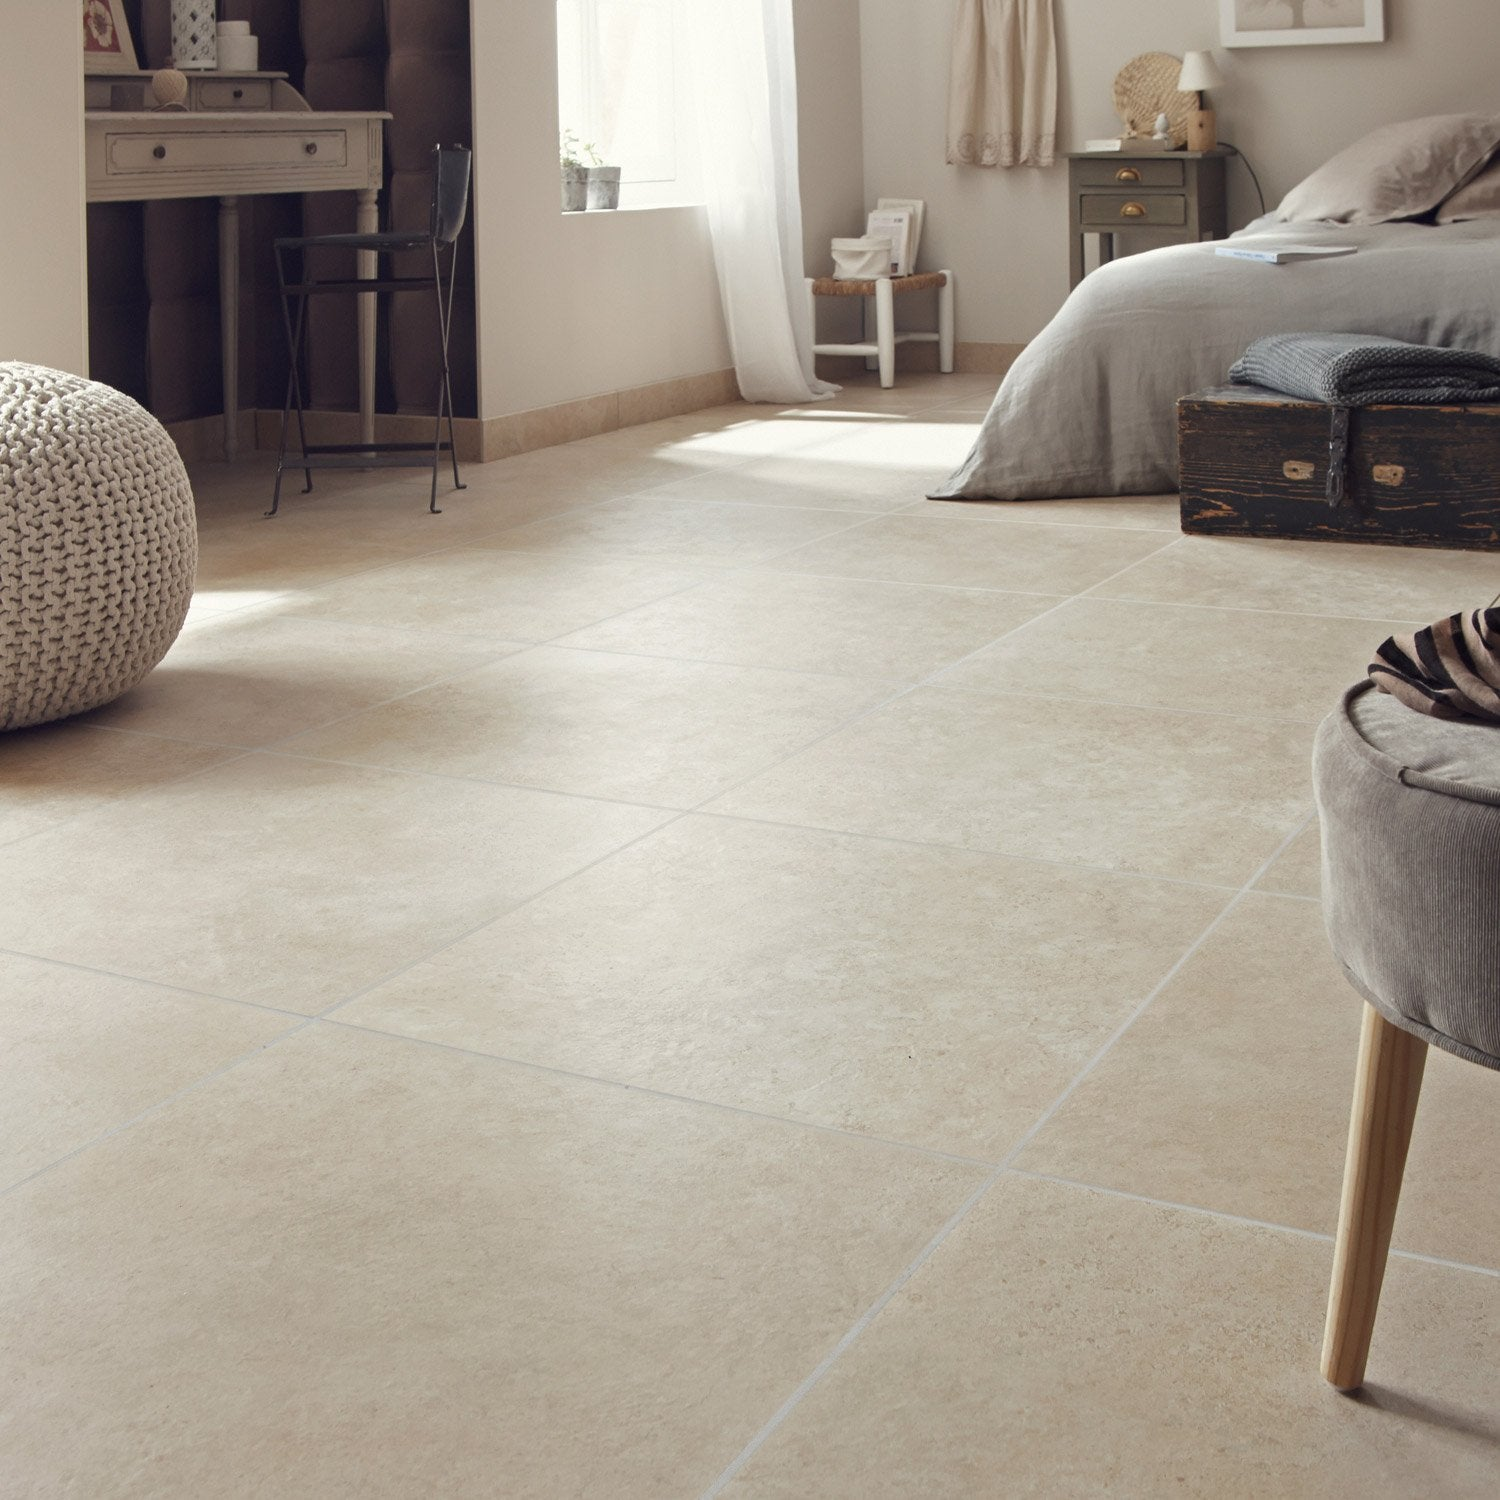 Carrelage 60x60 beige for Carrelage metro creme